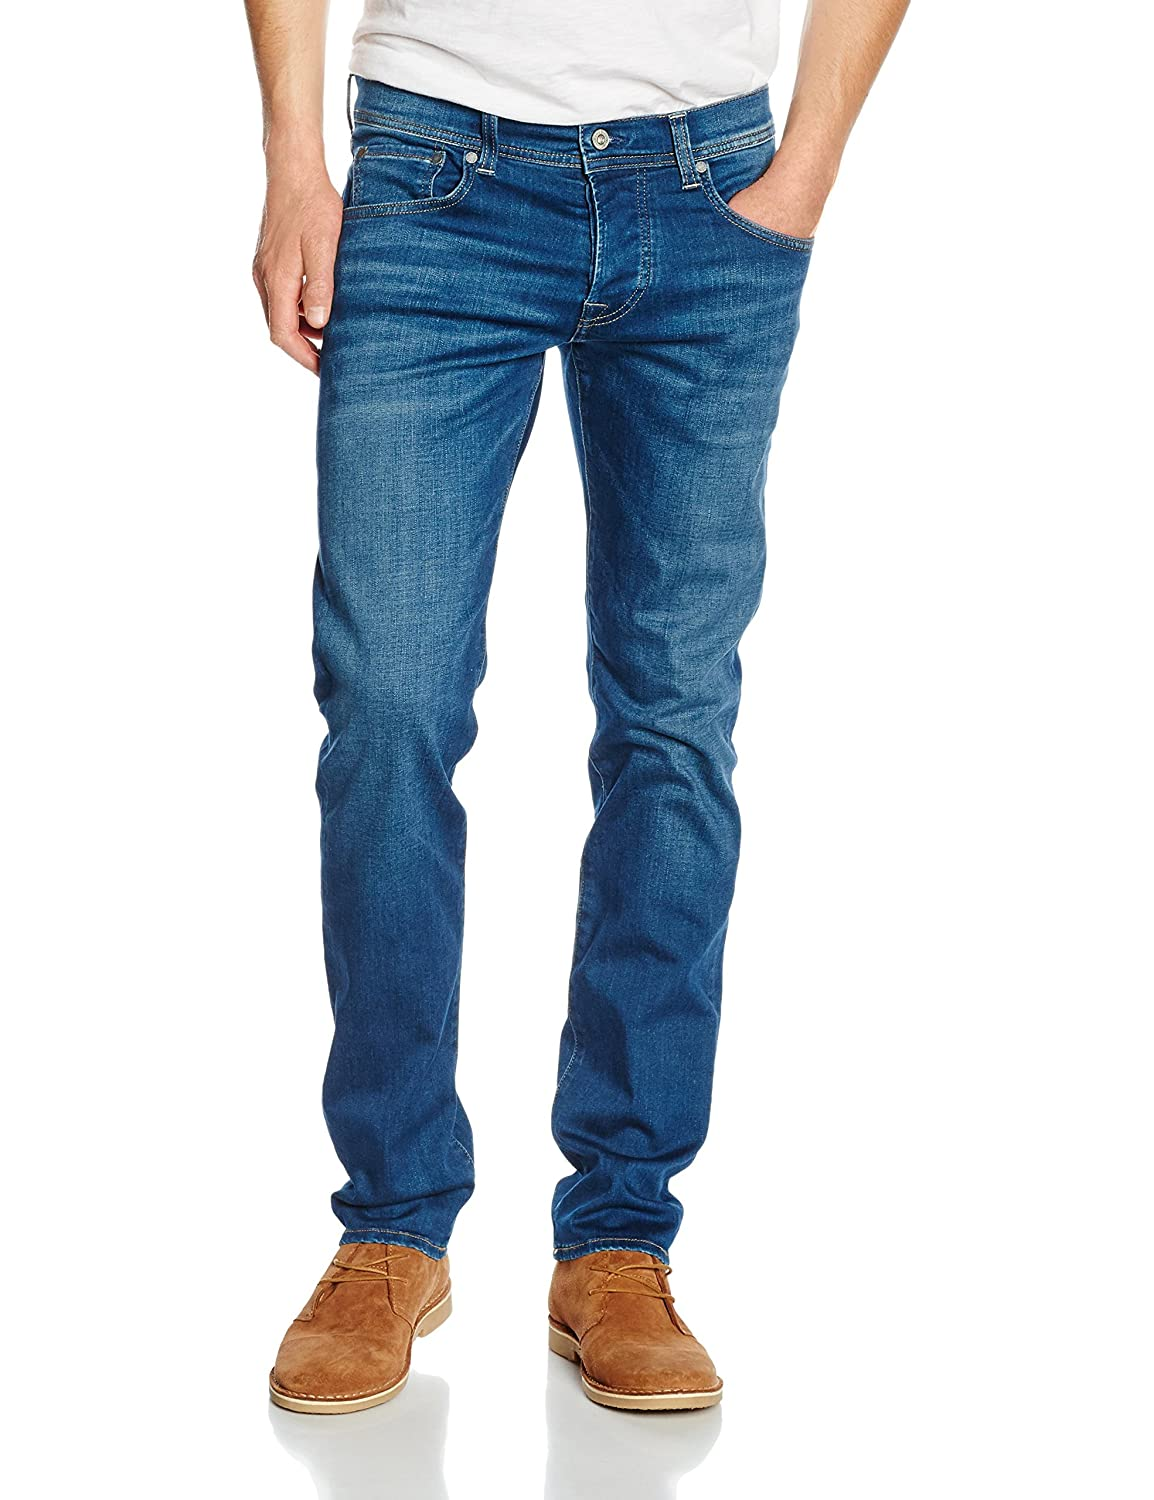 Pepe Jeans Herren Jeans Cane